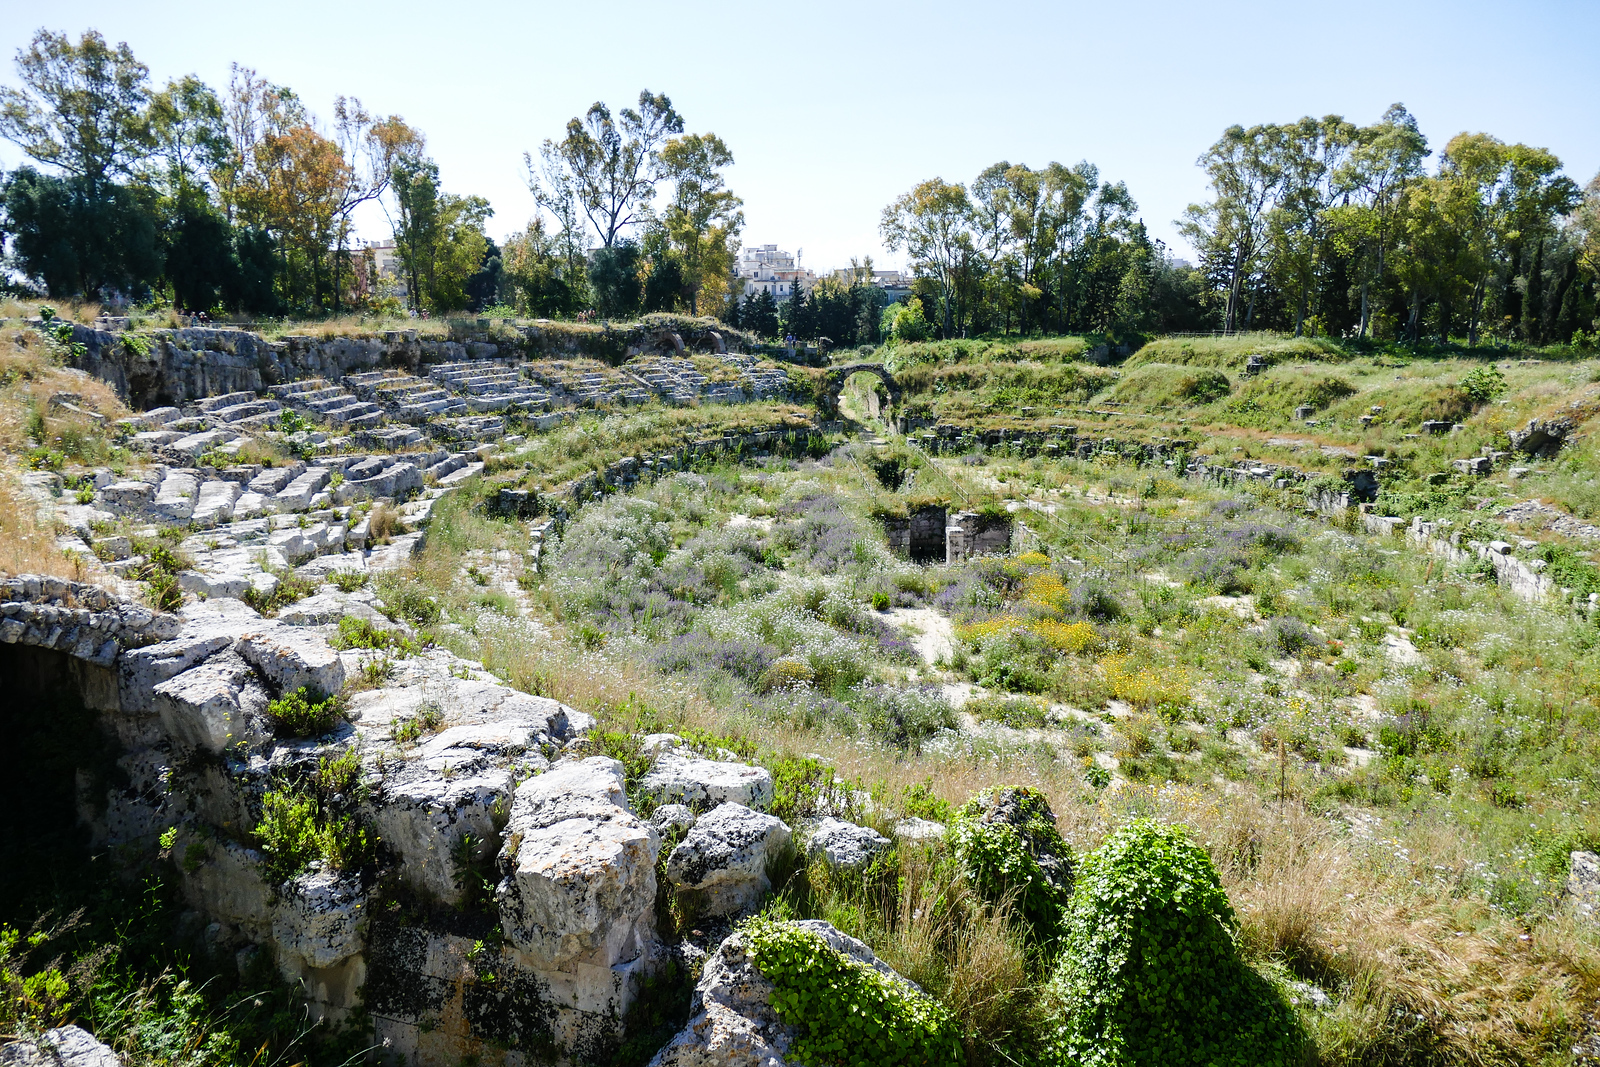 Trees and green shrubs surround the stone remains of the Roman coliseum in Syracuse, Sicily.